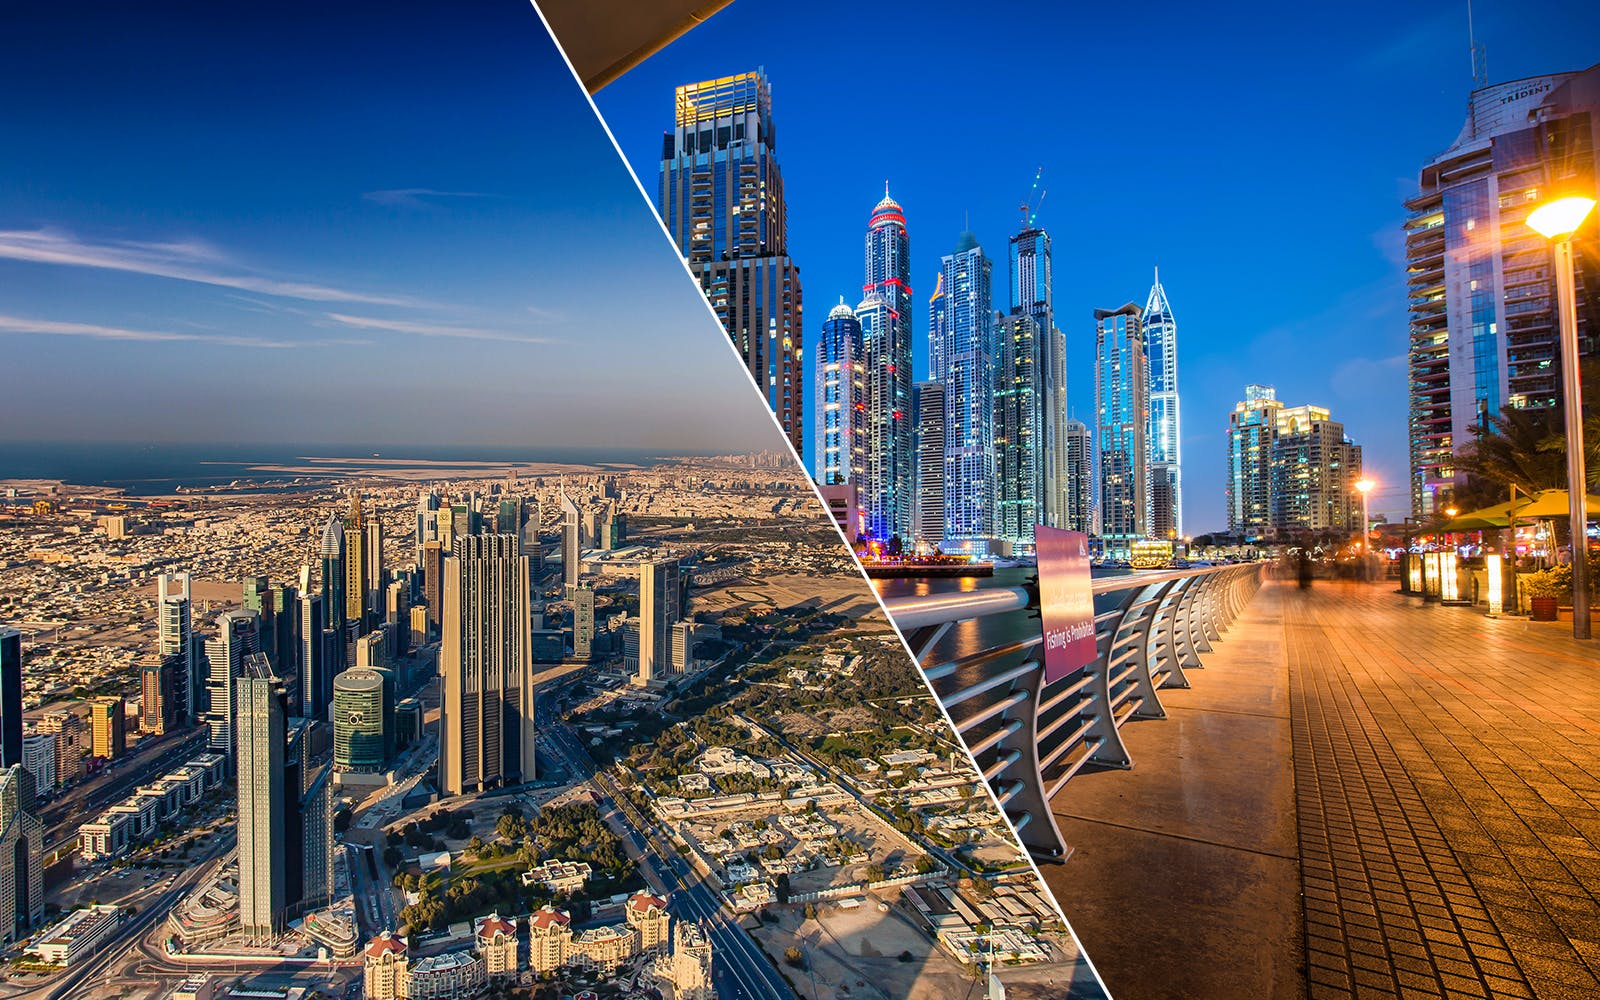 Dubai City Tour & Burj Khalifa Tickets Combo